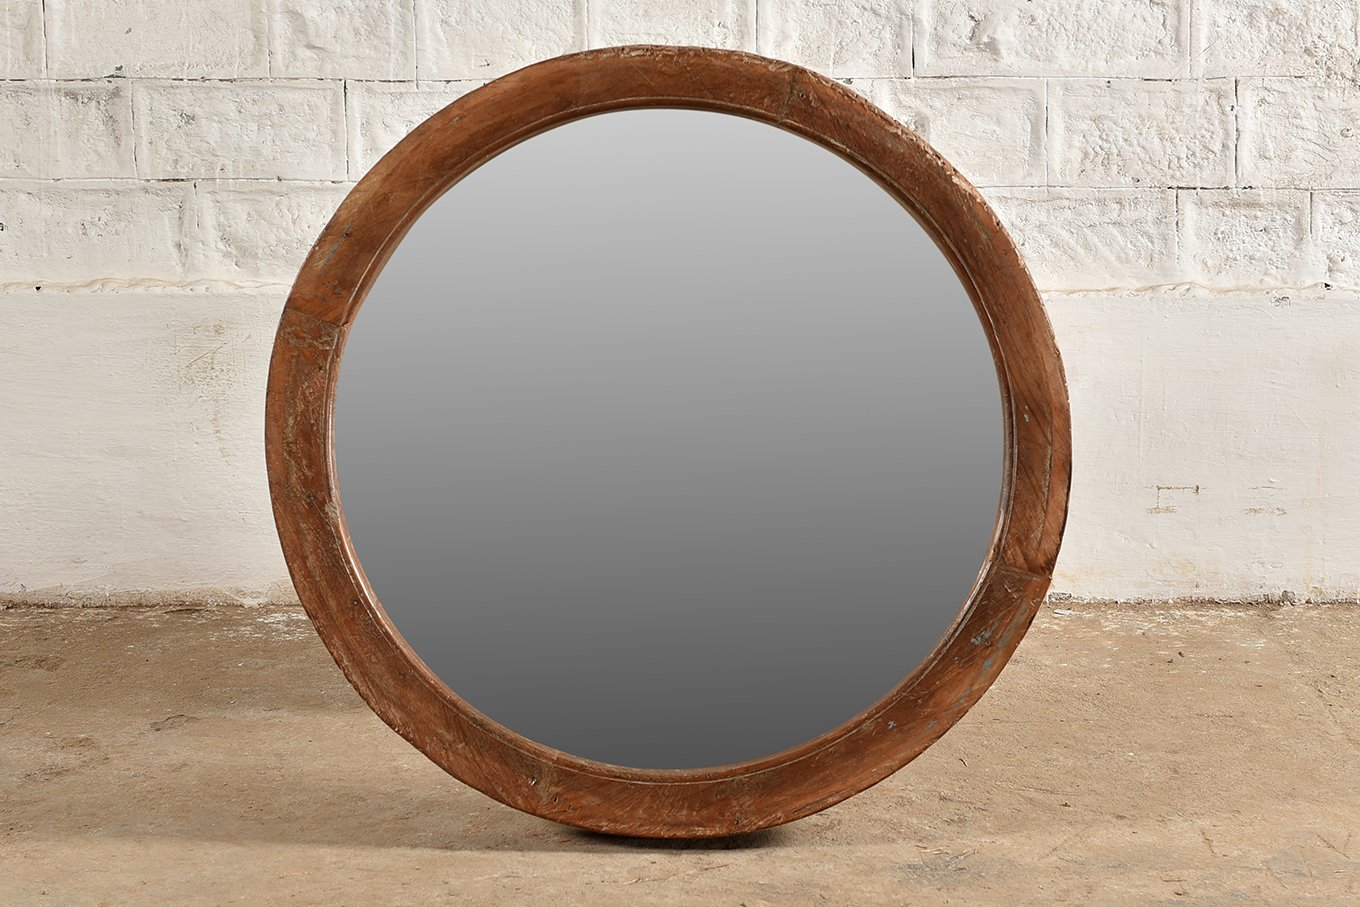 Round wooden mirror made from old wagon wheel